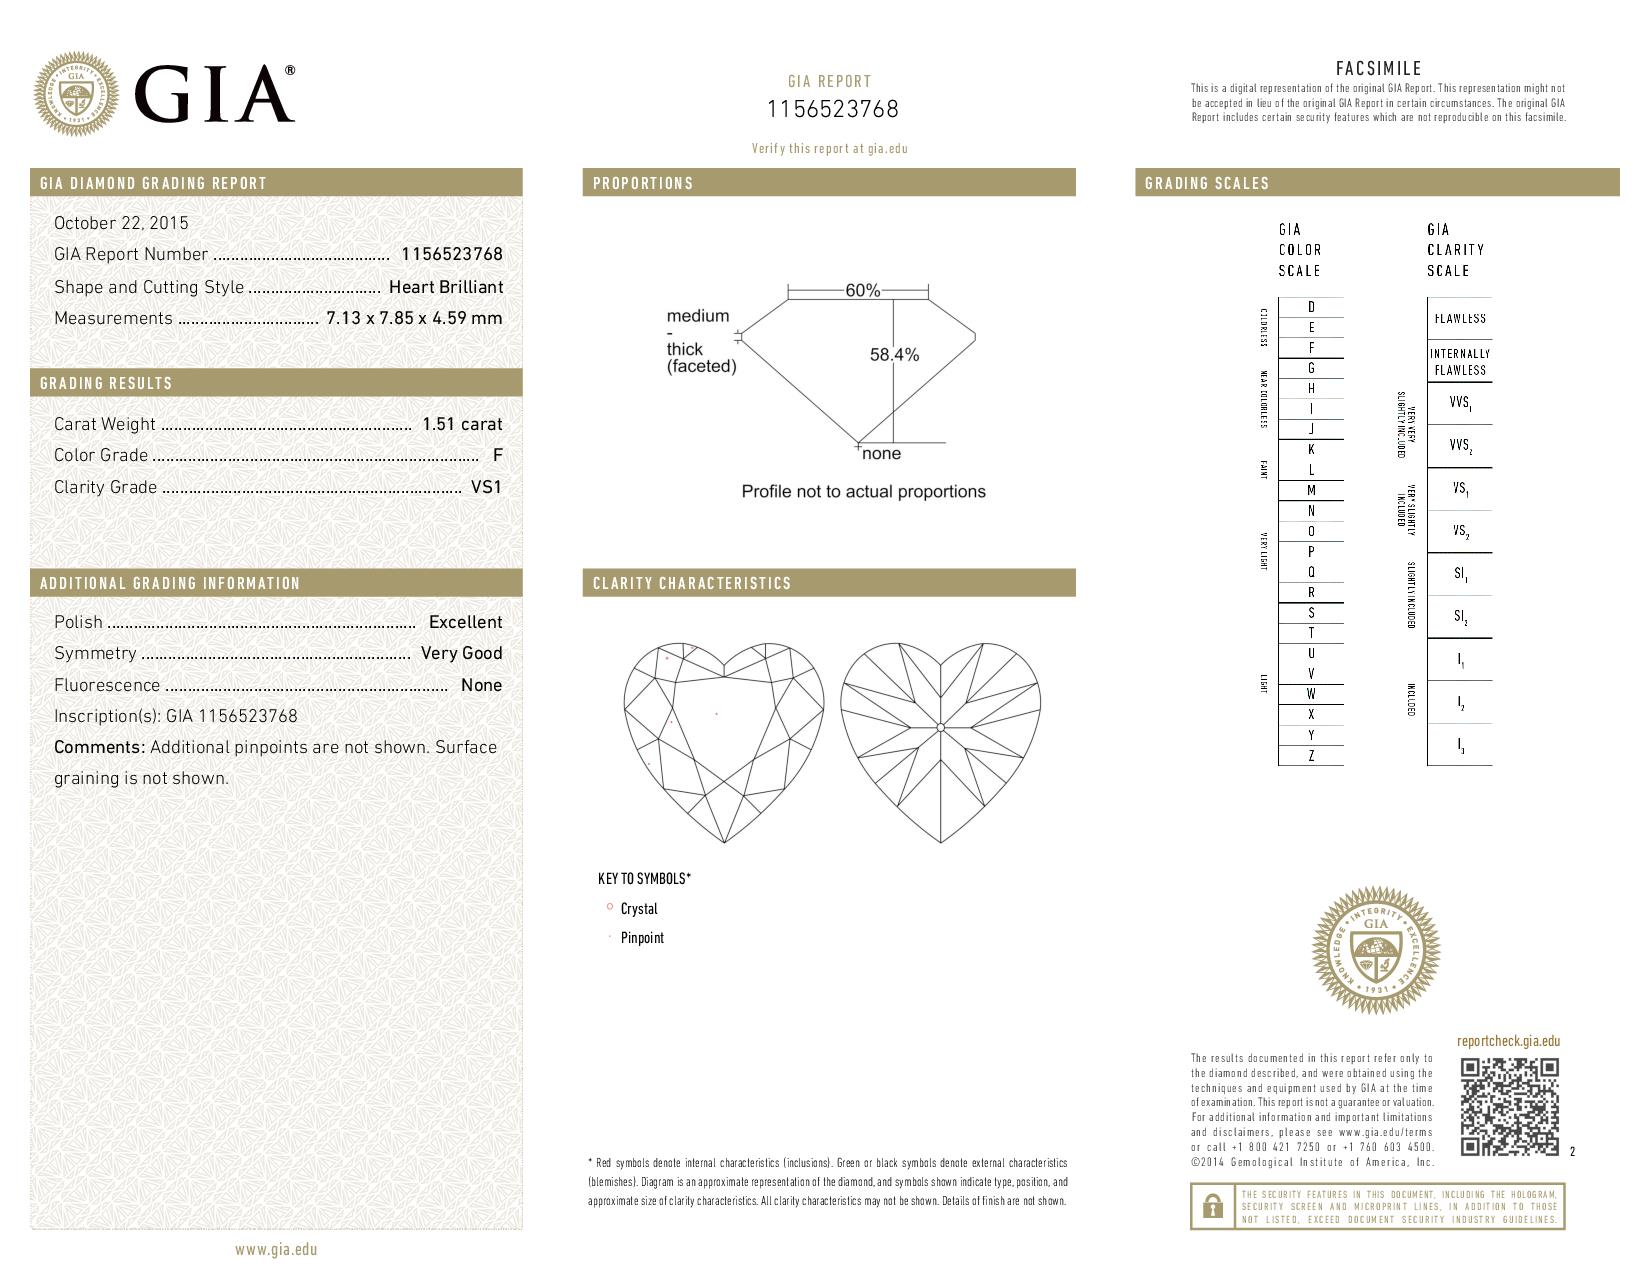 This is a 1.51 carat heart shape, F color, VS1 clarity natural diamond accompanied by a GIA grading report.